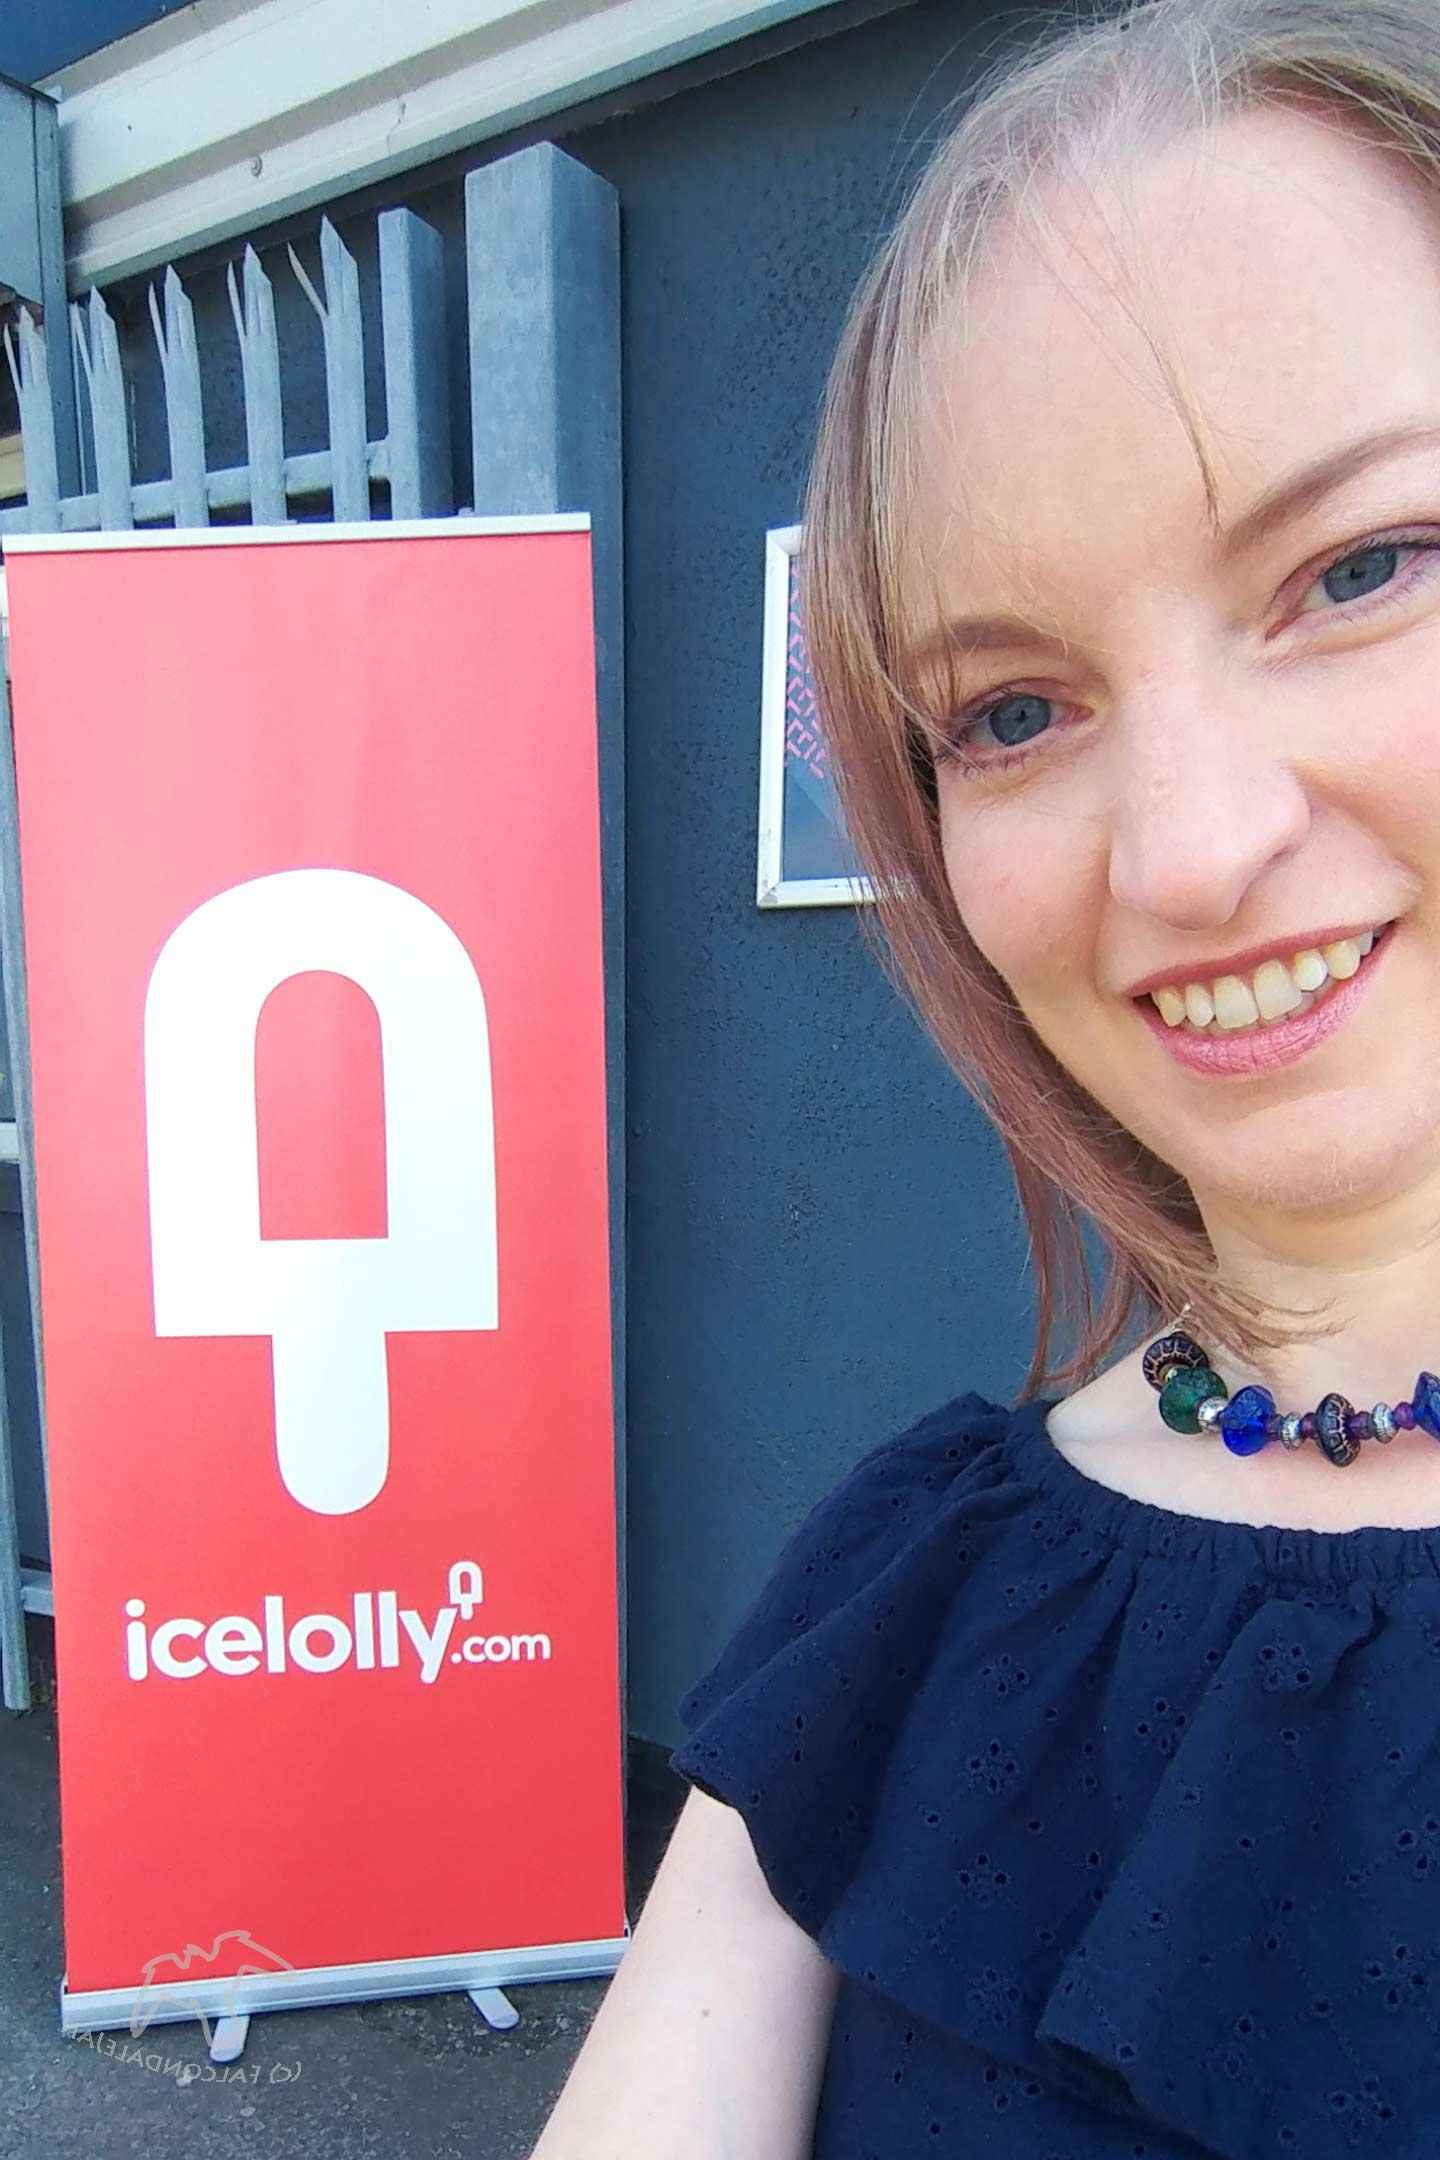 Finding out about holiday deals with Icelolly holidays at Blog at the Beach travel influencer's festival. Talks, offers, travel info plus games and food. 27 things I learned about Icelolly holidays on Falcondale Life blog. Image description: Falcondalejan with Icelolly holidays logo